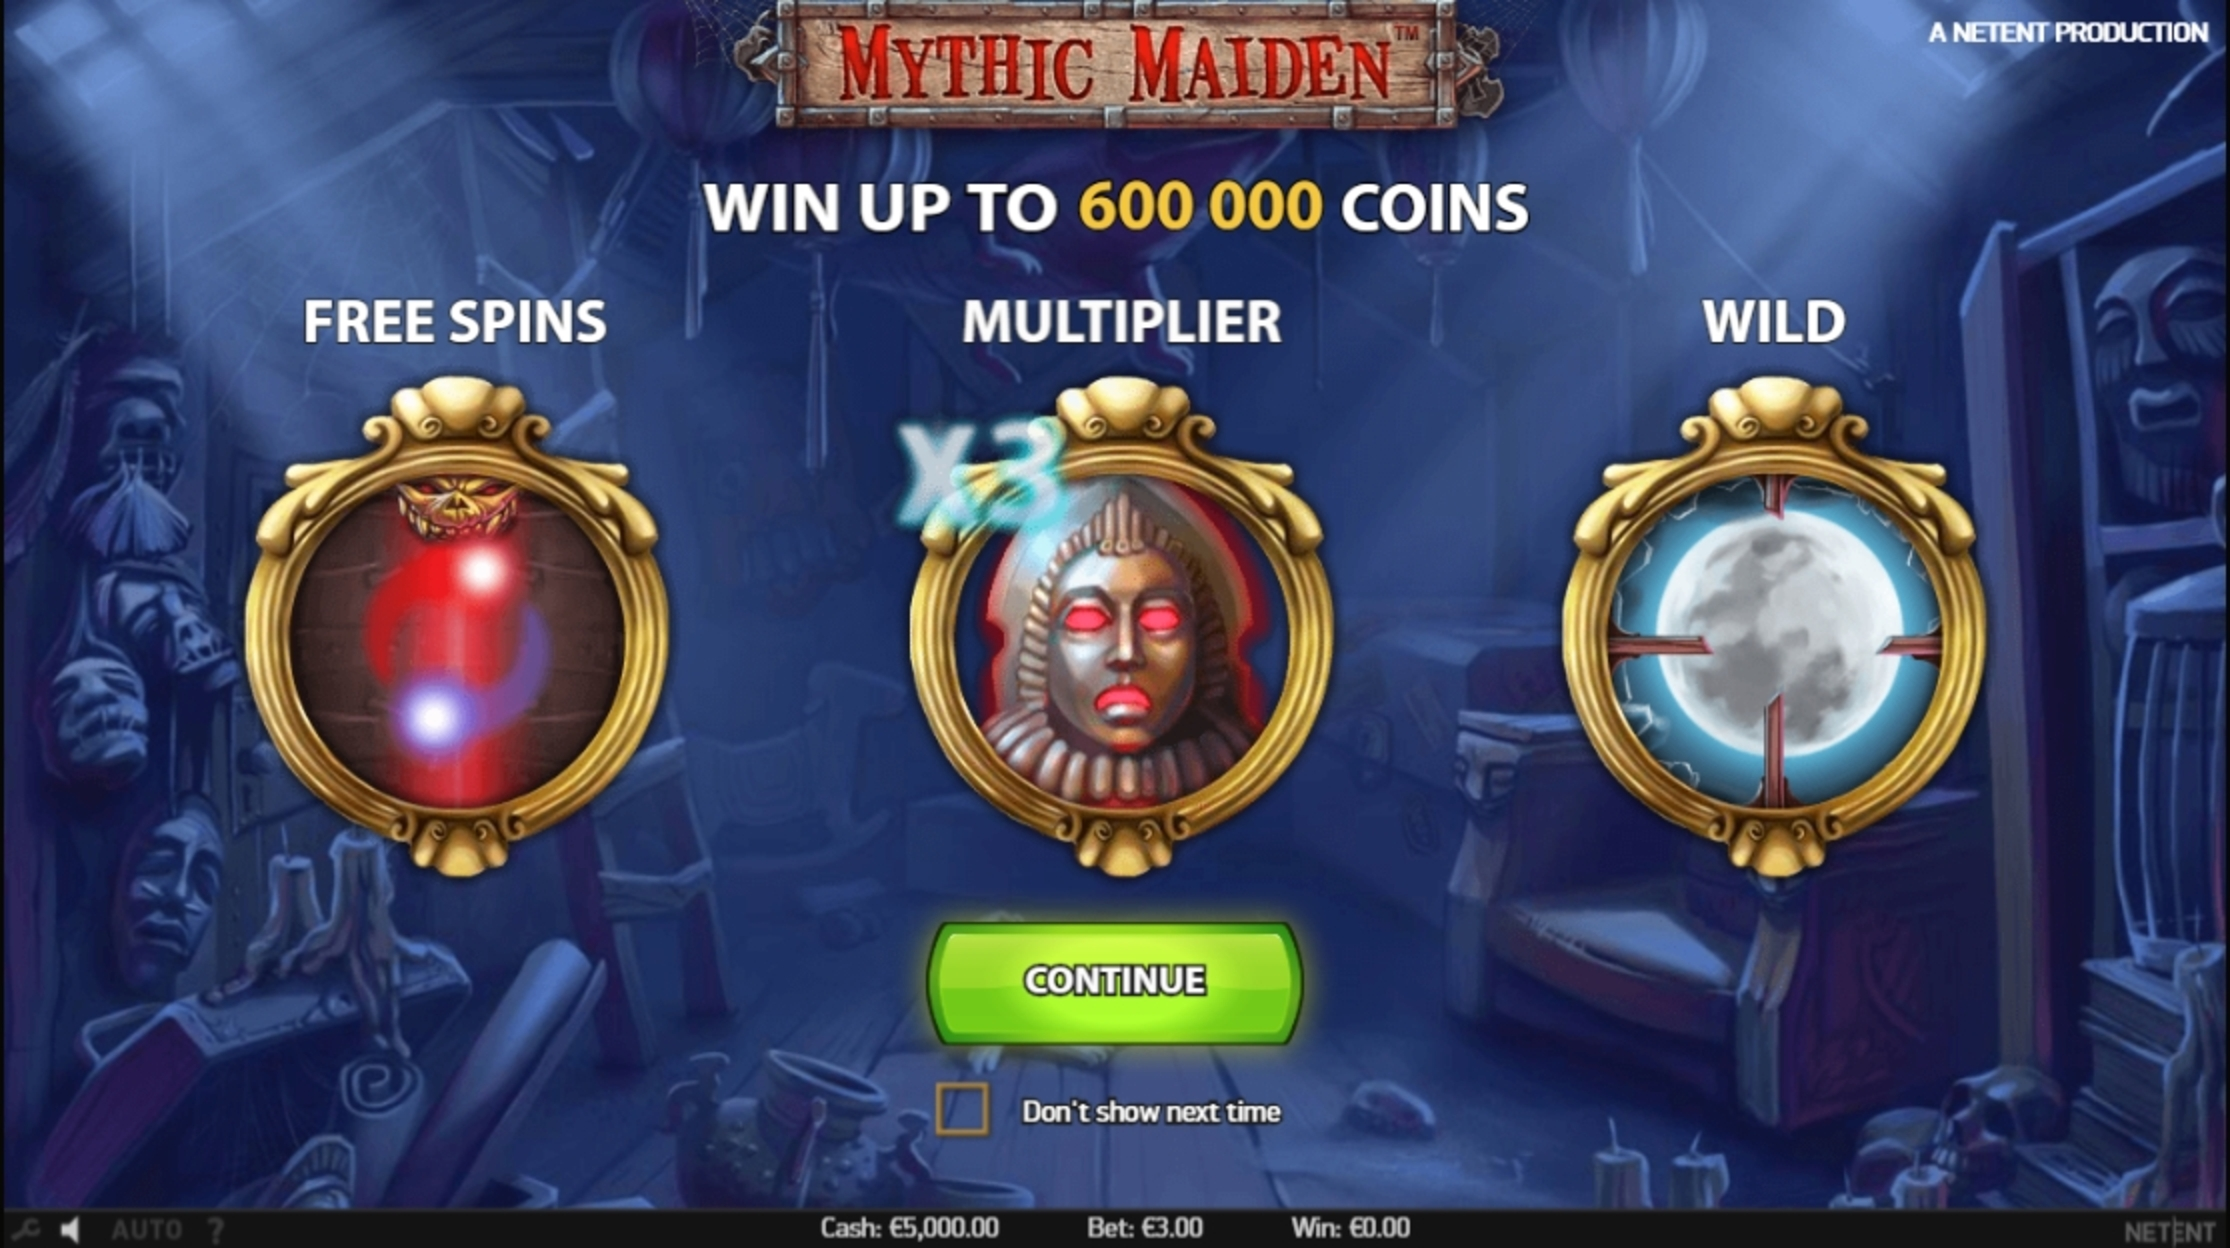 Play Mythic Maiden Free Casino Slot Game by NetEnt